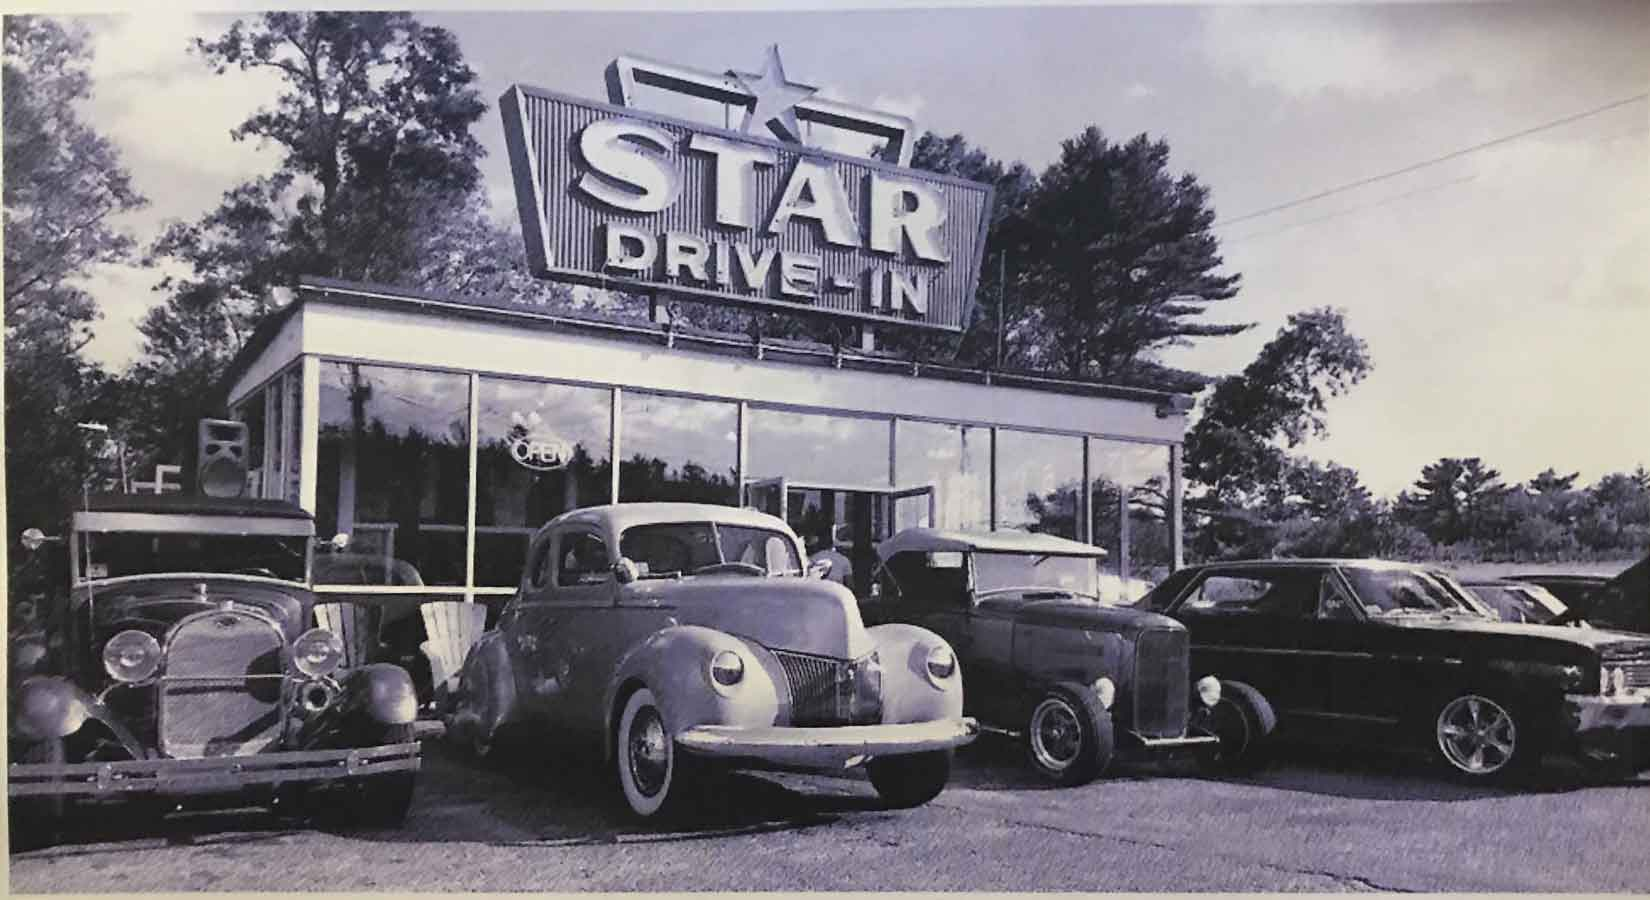 Chow Down on Mouthwatering Food at The Star Drive-In